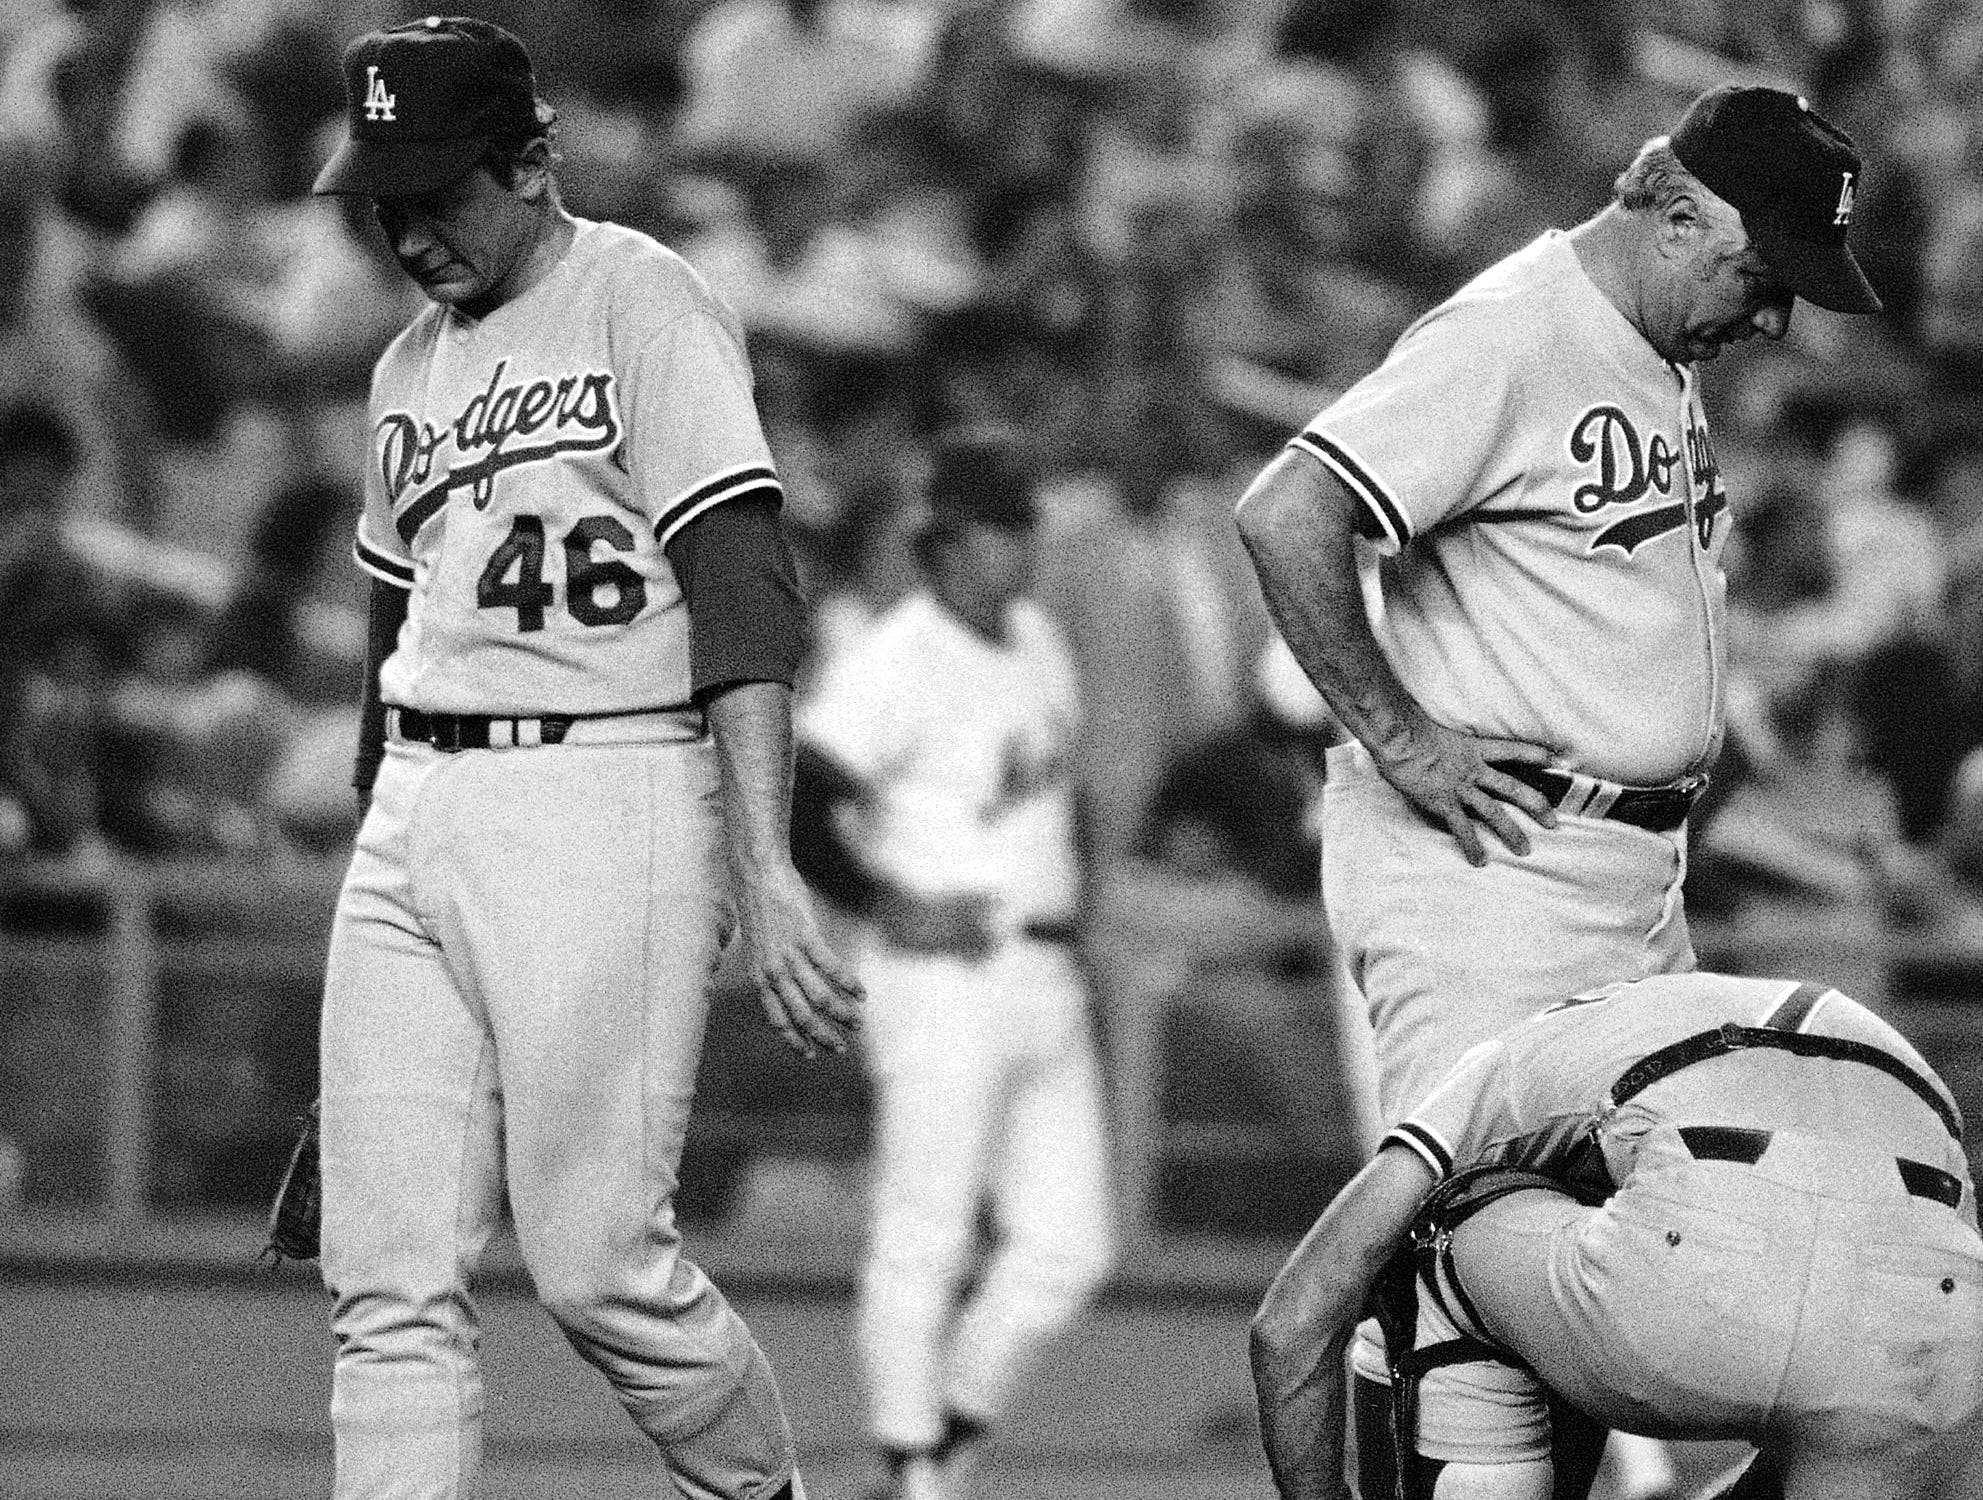 Los Angeles Dodgers pitcher Burt Hooton, left, joined by his manager Tom Lasorda eye the ground at the Shea Stadium in New York, July 12, 1979 mound as catcher Steve Yeager ties his shoes laces after Lasorda made the first inning trip to remove his pitcher from the game. The New York Mets had record heights in the inning, seven unearned credited to Hooten. The Dodgers, who were National League champions in 1978 are in last place in the National League west, entering the game 16 ½ games out of first. (AP Photo/Stubblebine)